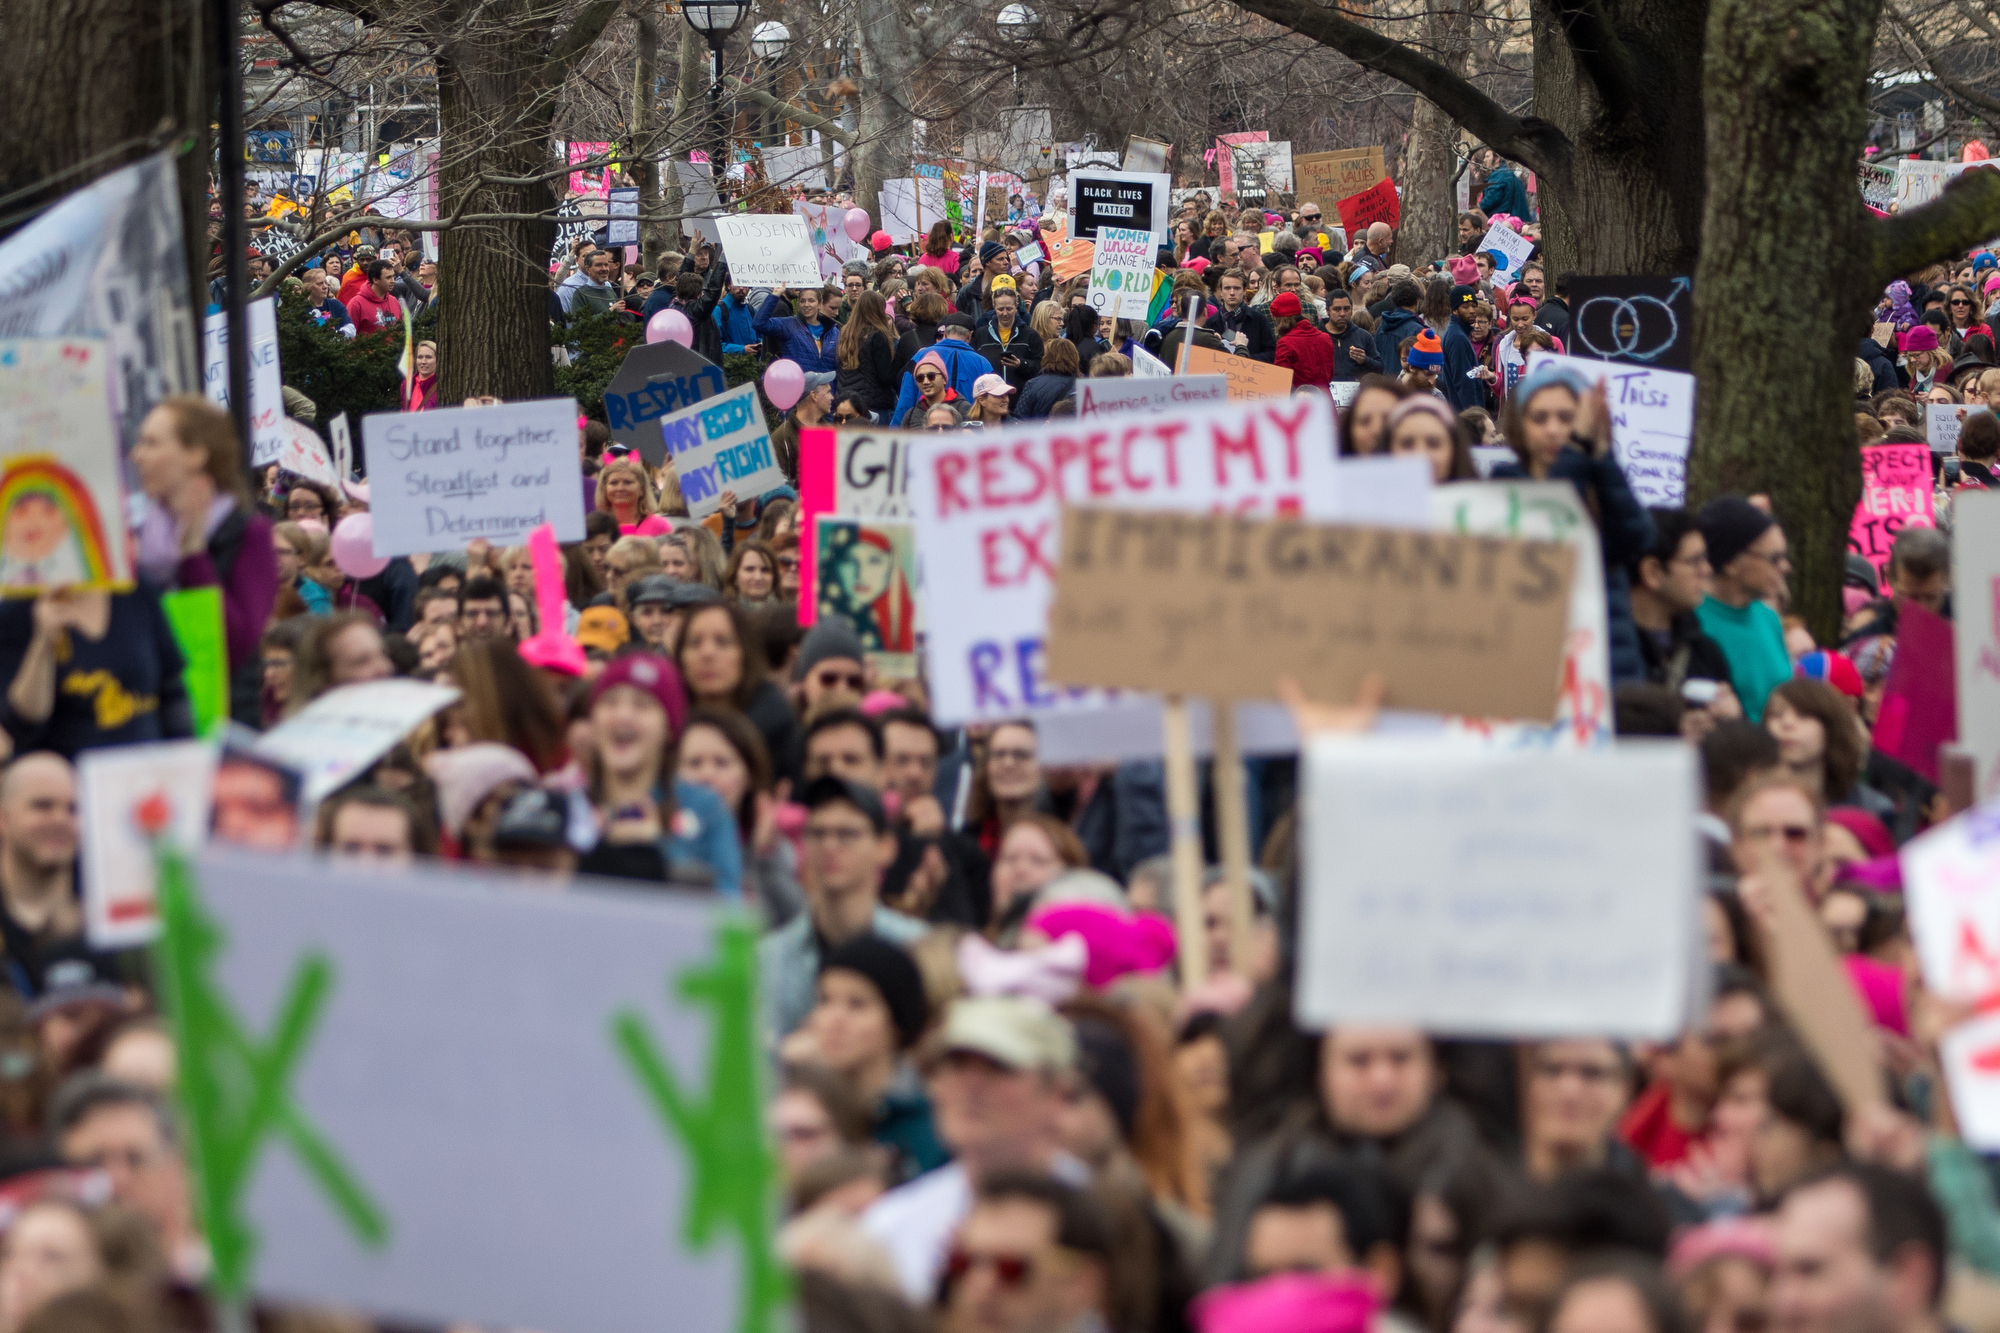 Thousands gather at the Diag at the University of Michigan during the Women's March on Saturday, January 21, 2017.  The march was one of several throughout the country and drew over 6,000 people. Matt Weigand | The Ann Arbor News